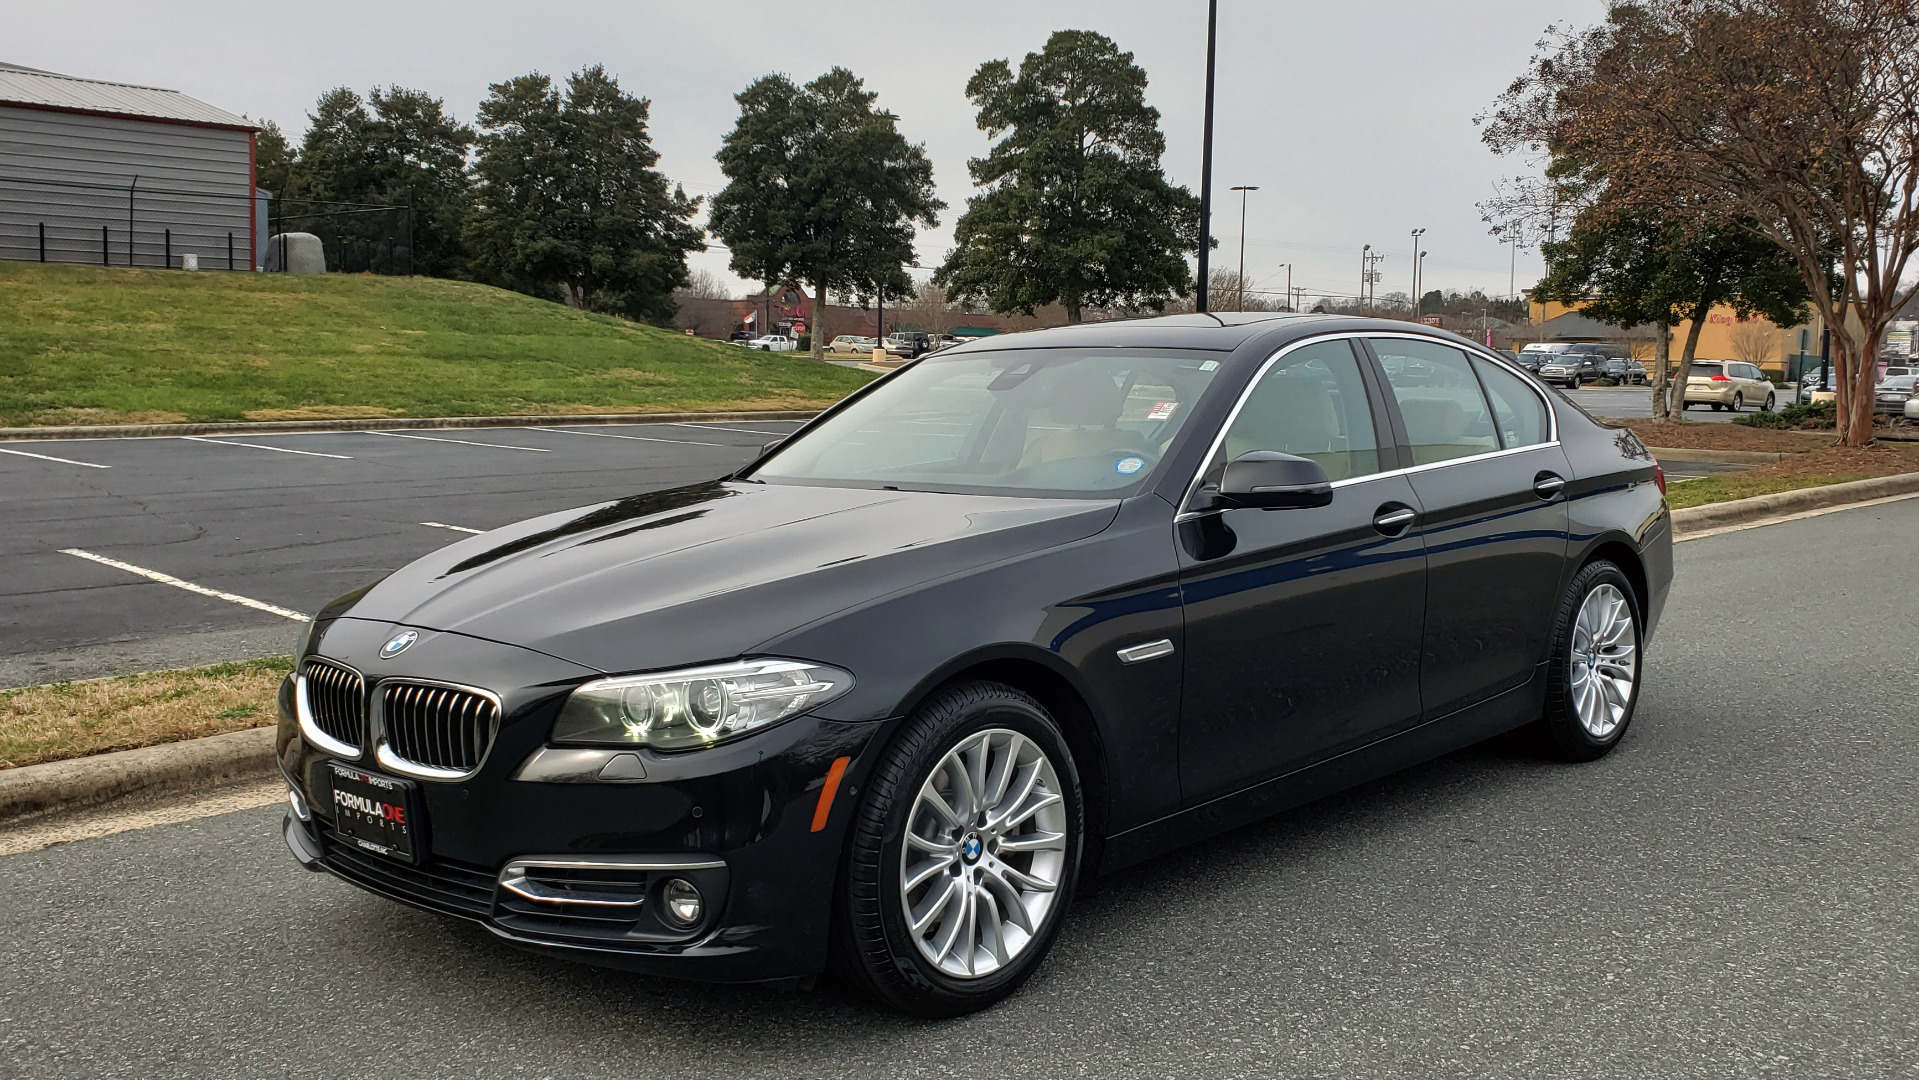 Used 2016 BMW 5 SERIES 528i XDRIVE / PREM PKG / DRVR ASST PLUS / LUXURY / COLD WTHR for sale Sold at Formula Imports in Charlotte NC 28227 1